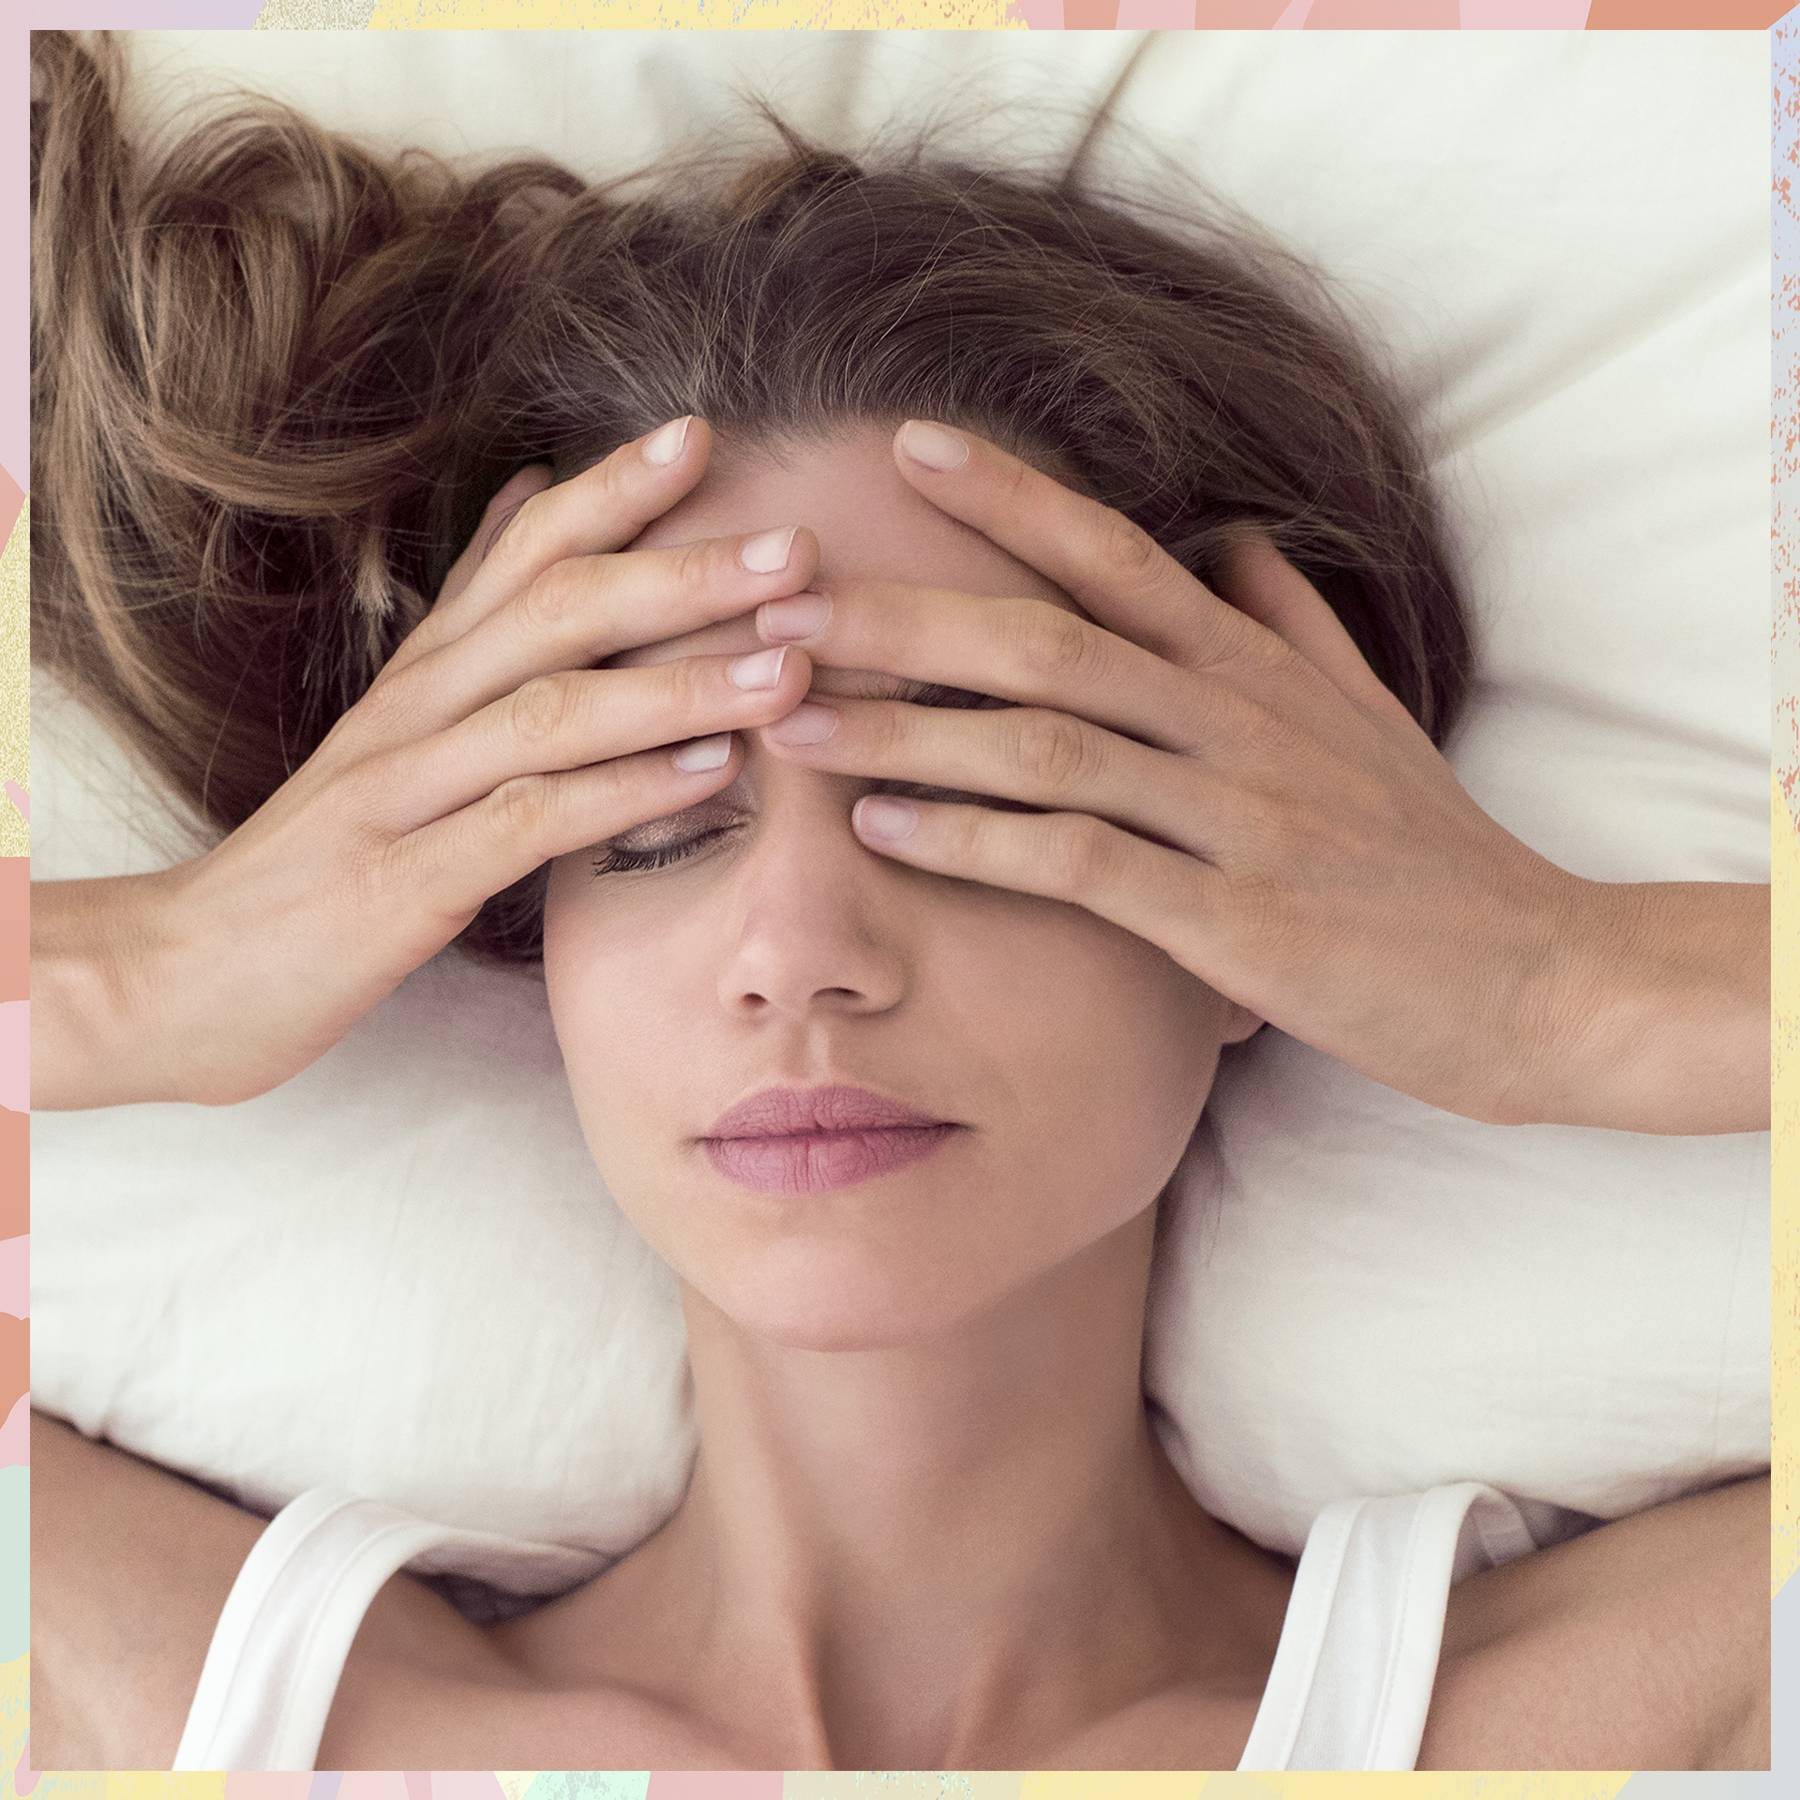 This is everything you need to know about migraines and how to best cope with them according to a top neurologist